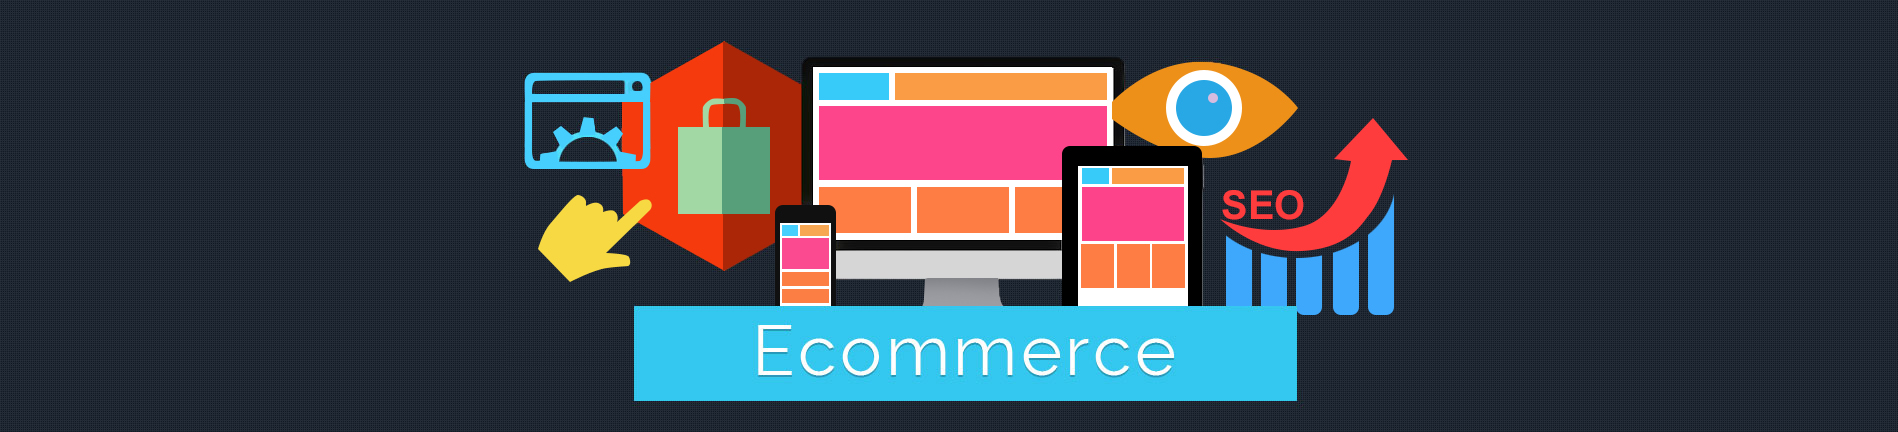 ecommerce web design and development belfast northern ireland